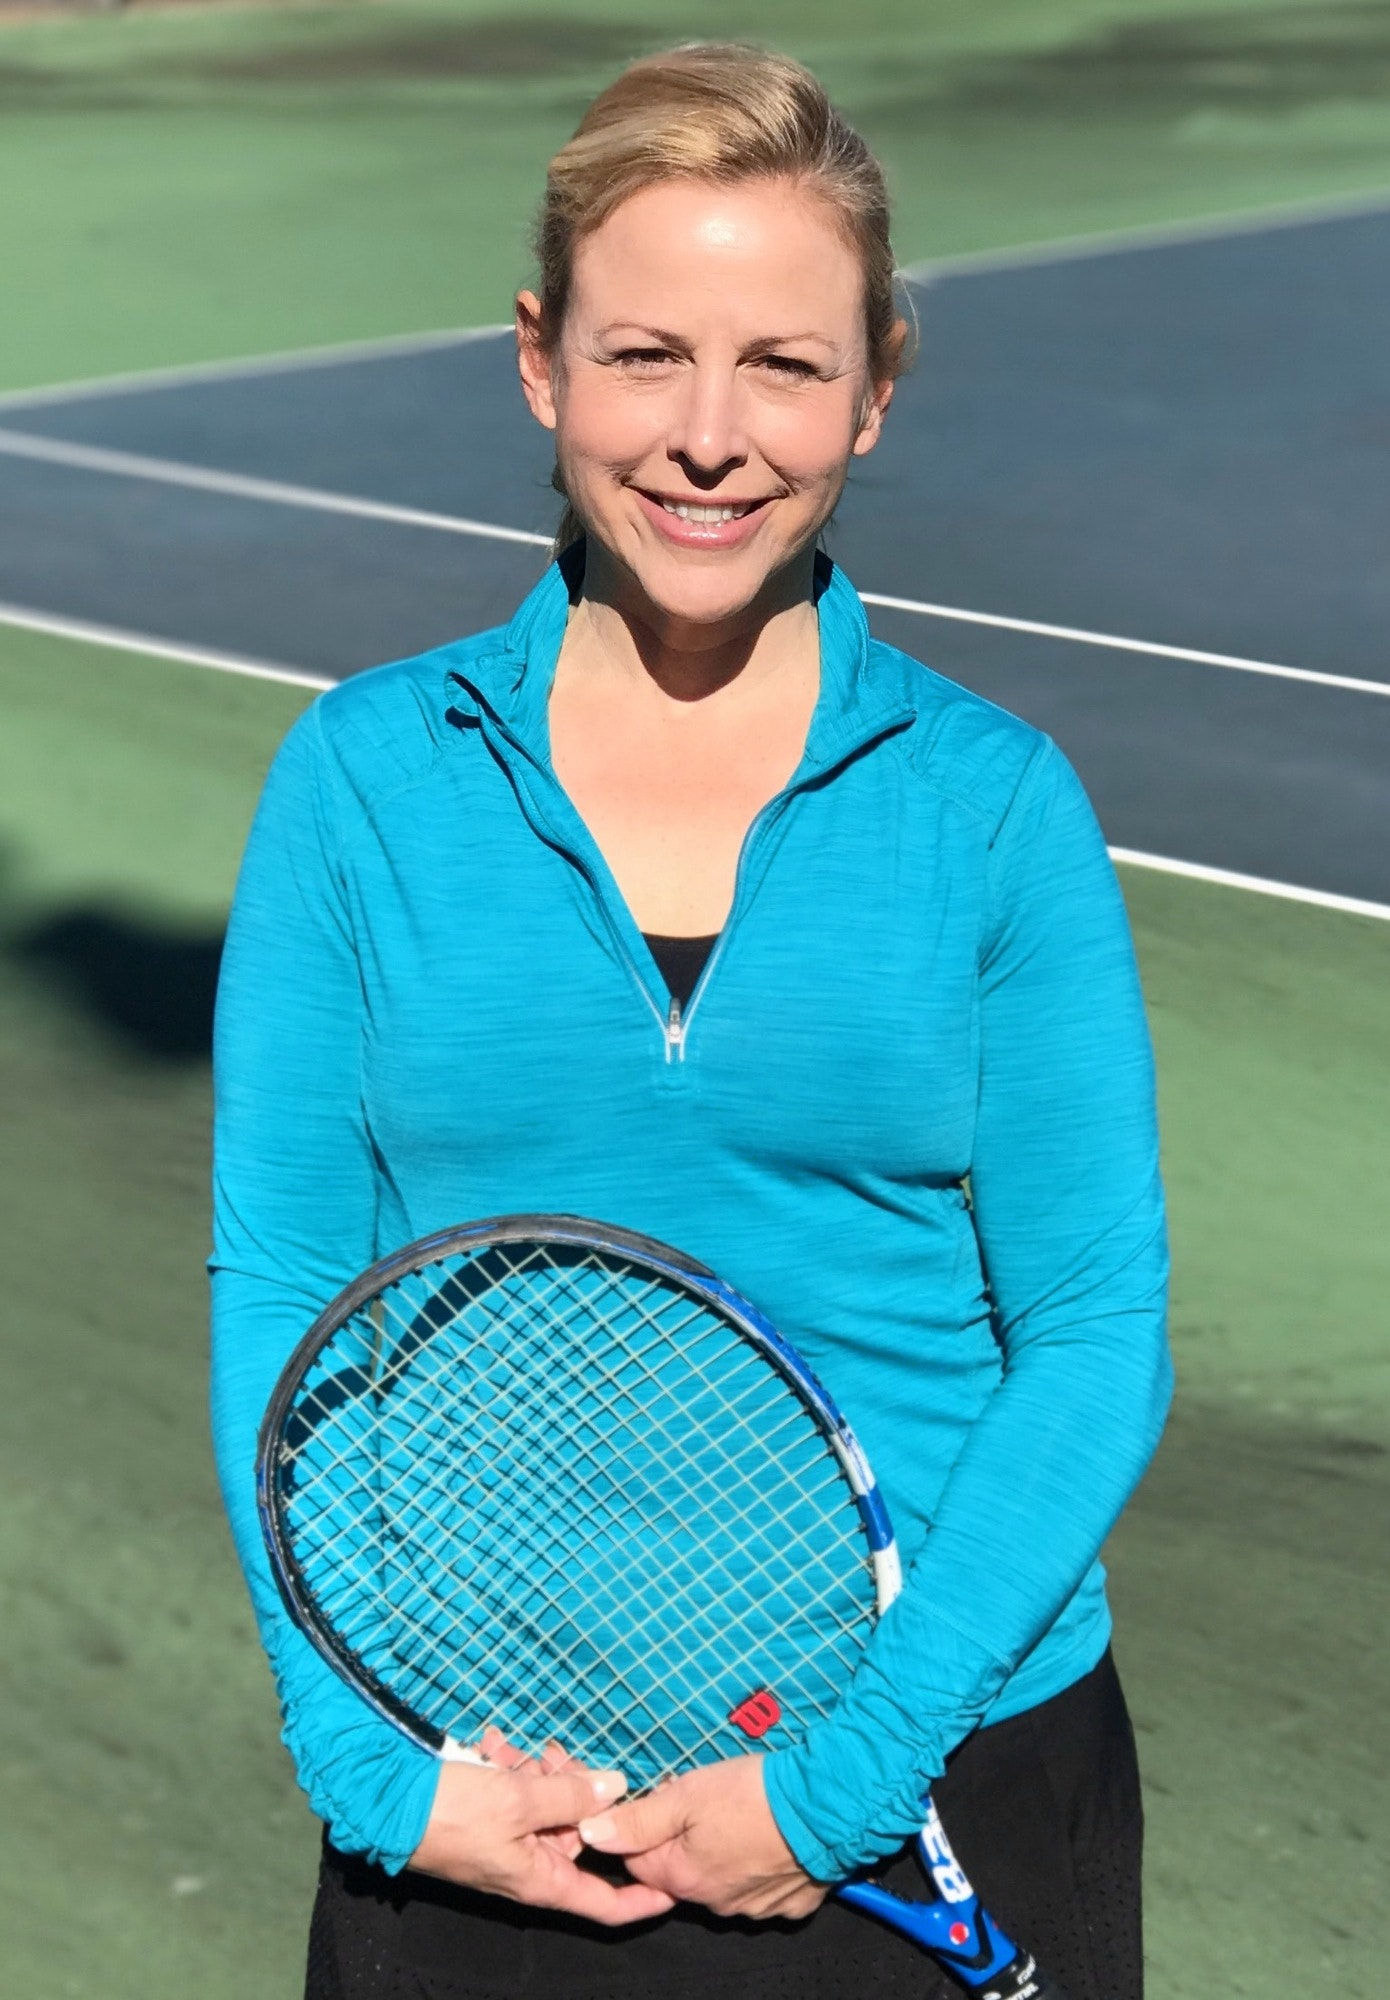 Melanie M. teaches tennis lessons in Nashville, TN